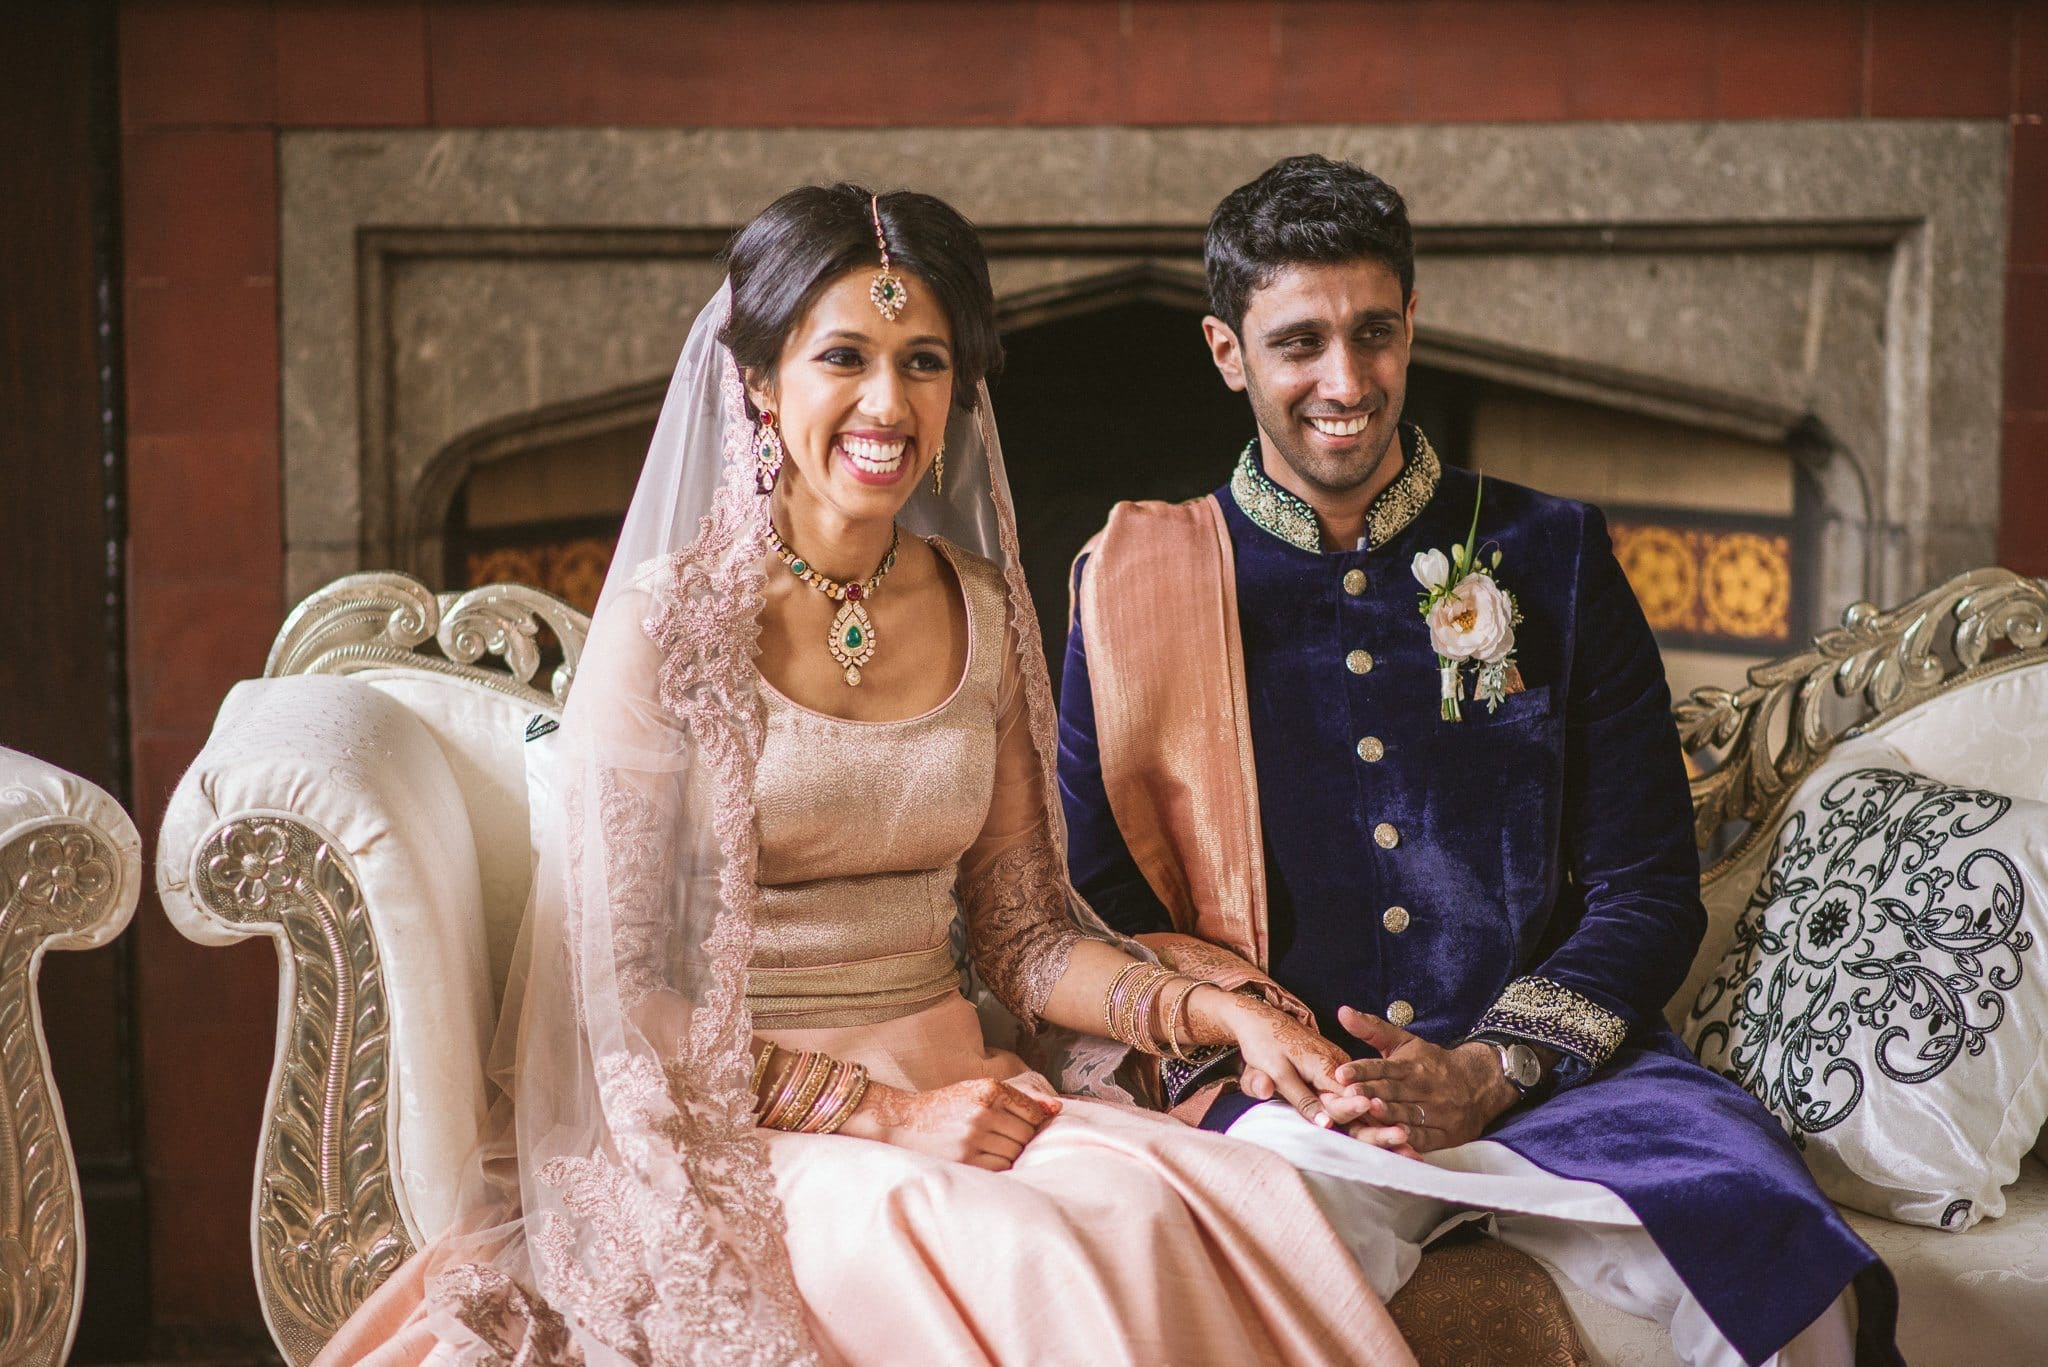 Sorayya and Usman are seated together on a velvet chaise longue during their wedding ceremony